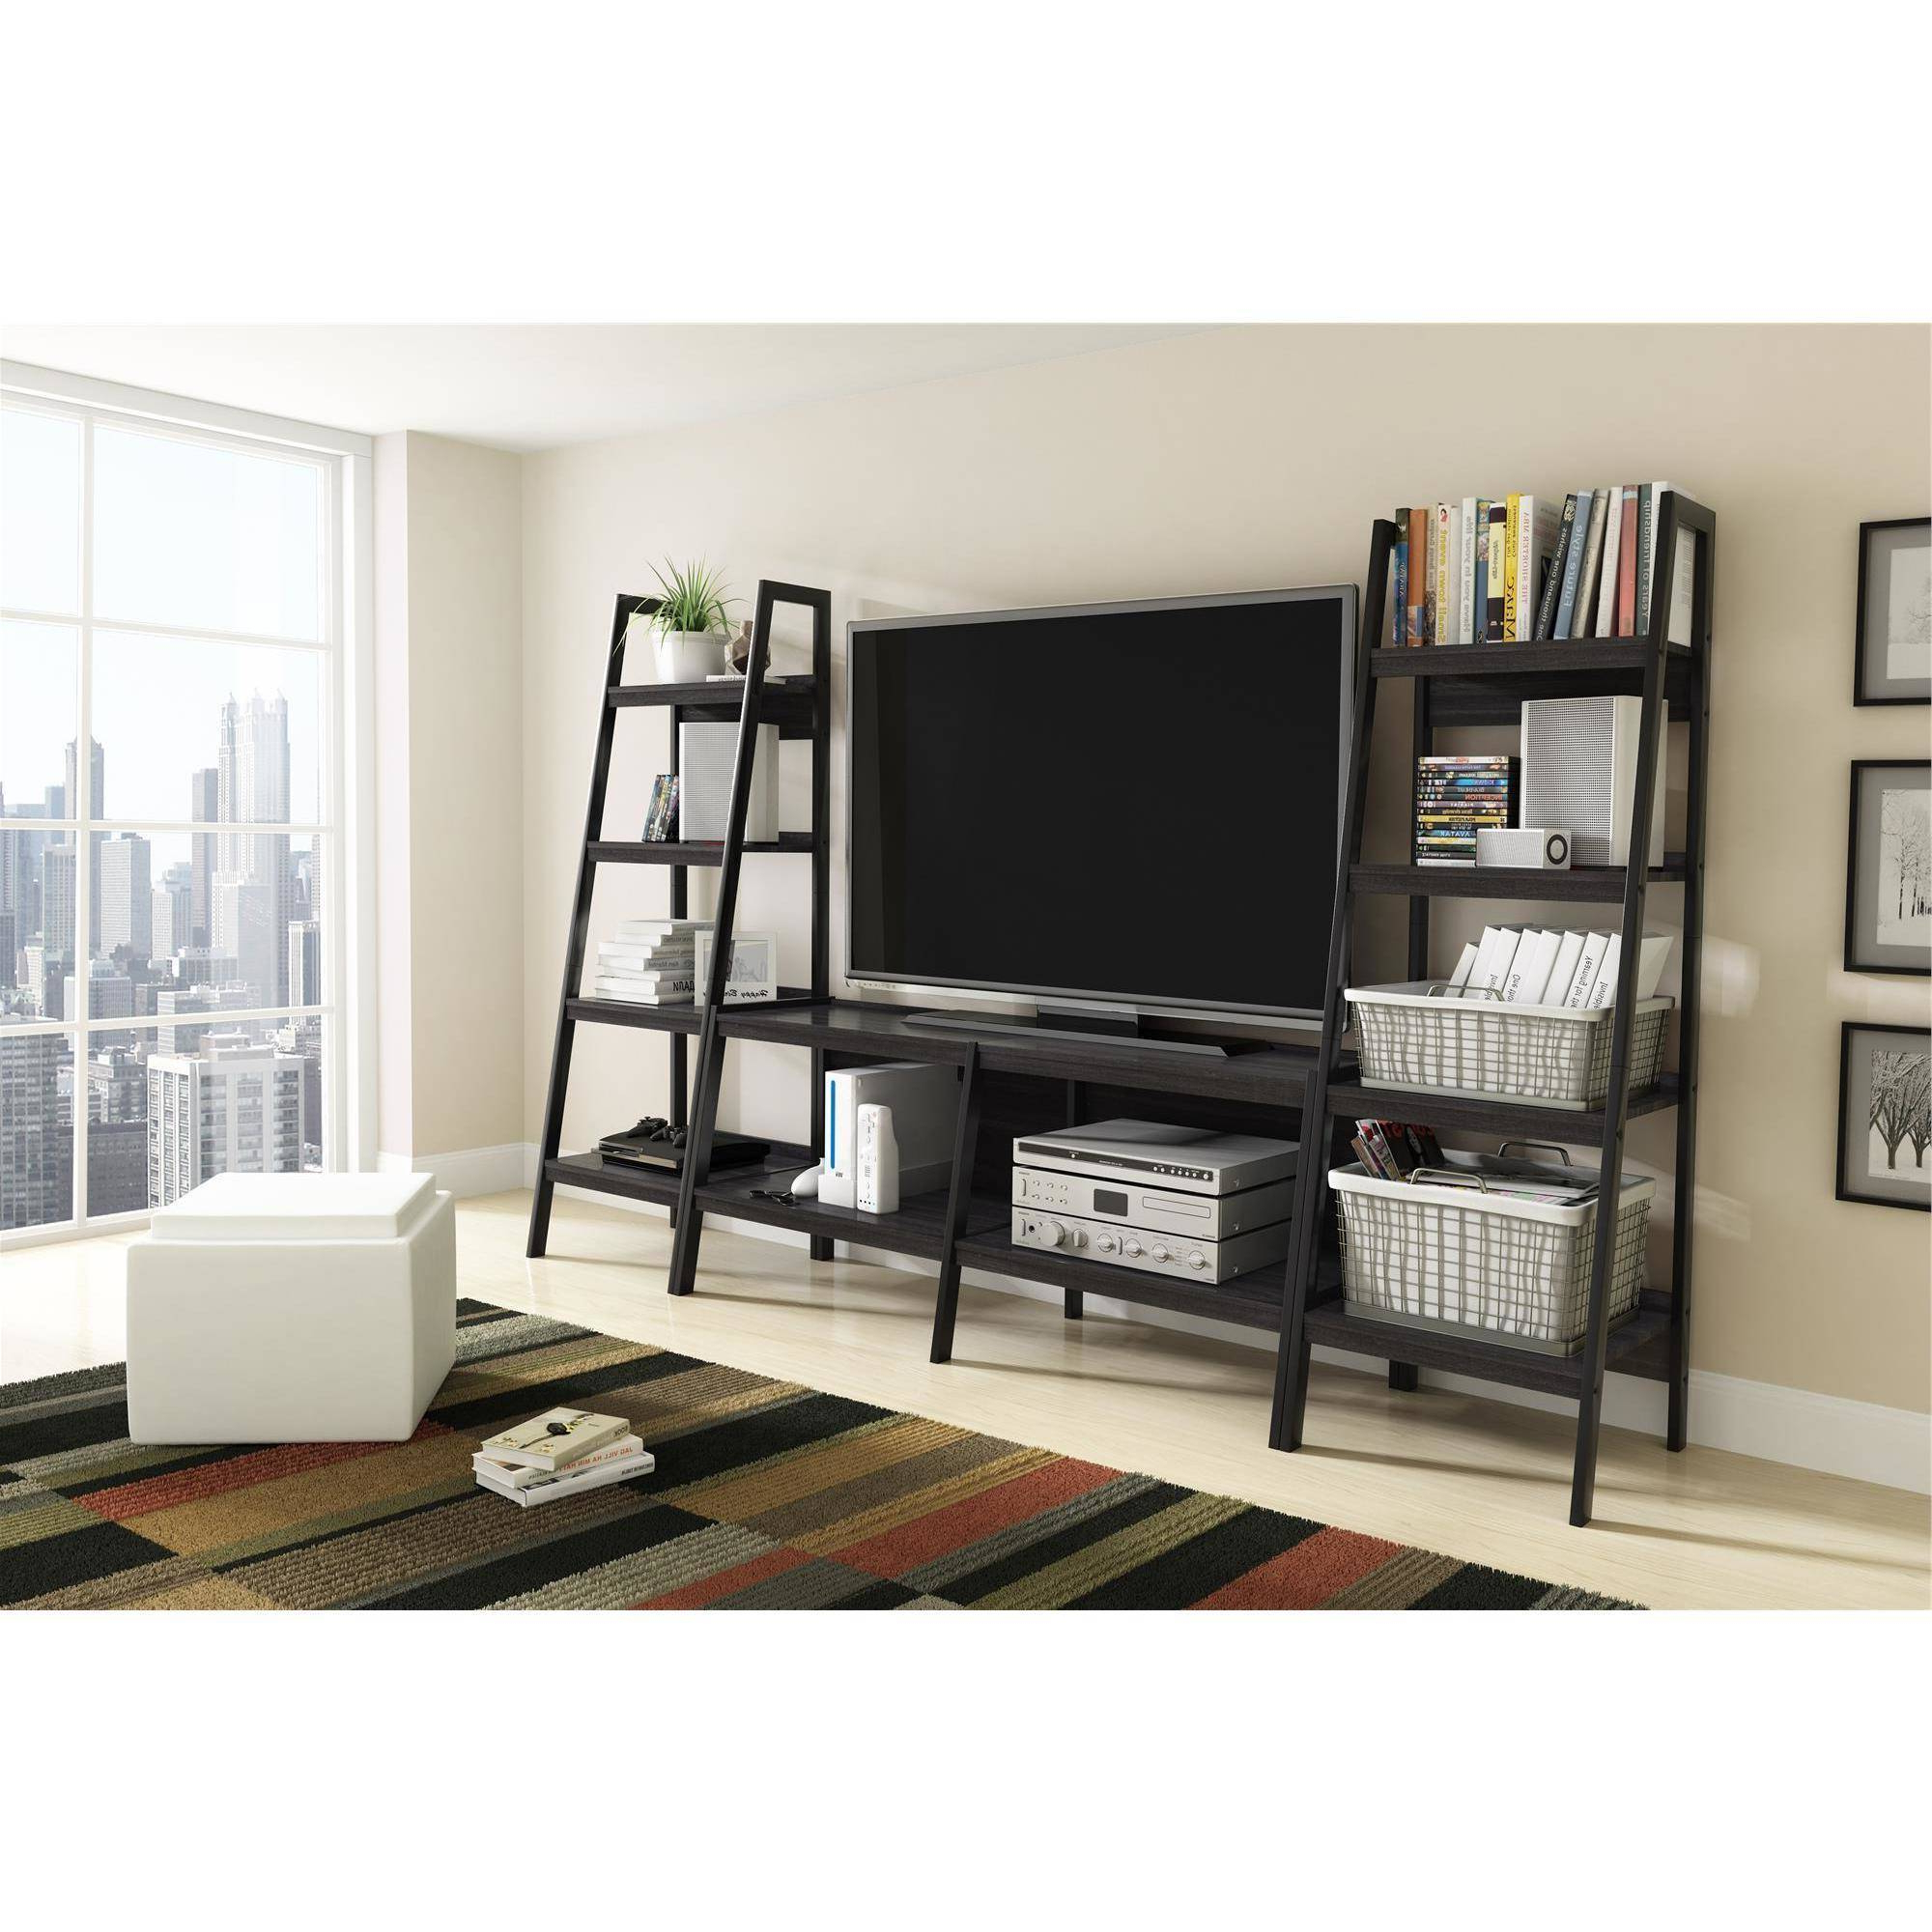 Tv Stands And Bookshelf Intended For Trendy Bookshelf And Tv Stand Set Ladder Bookcase 3 Piece Entertainment (View 16 of 20)